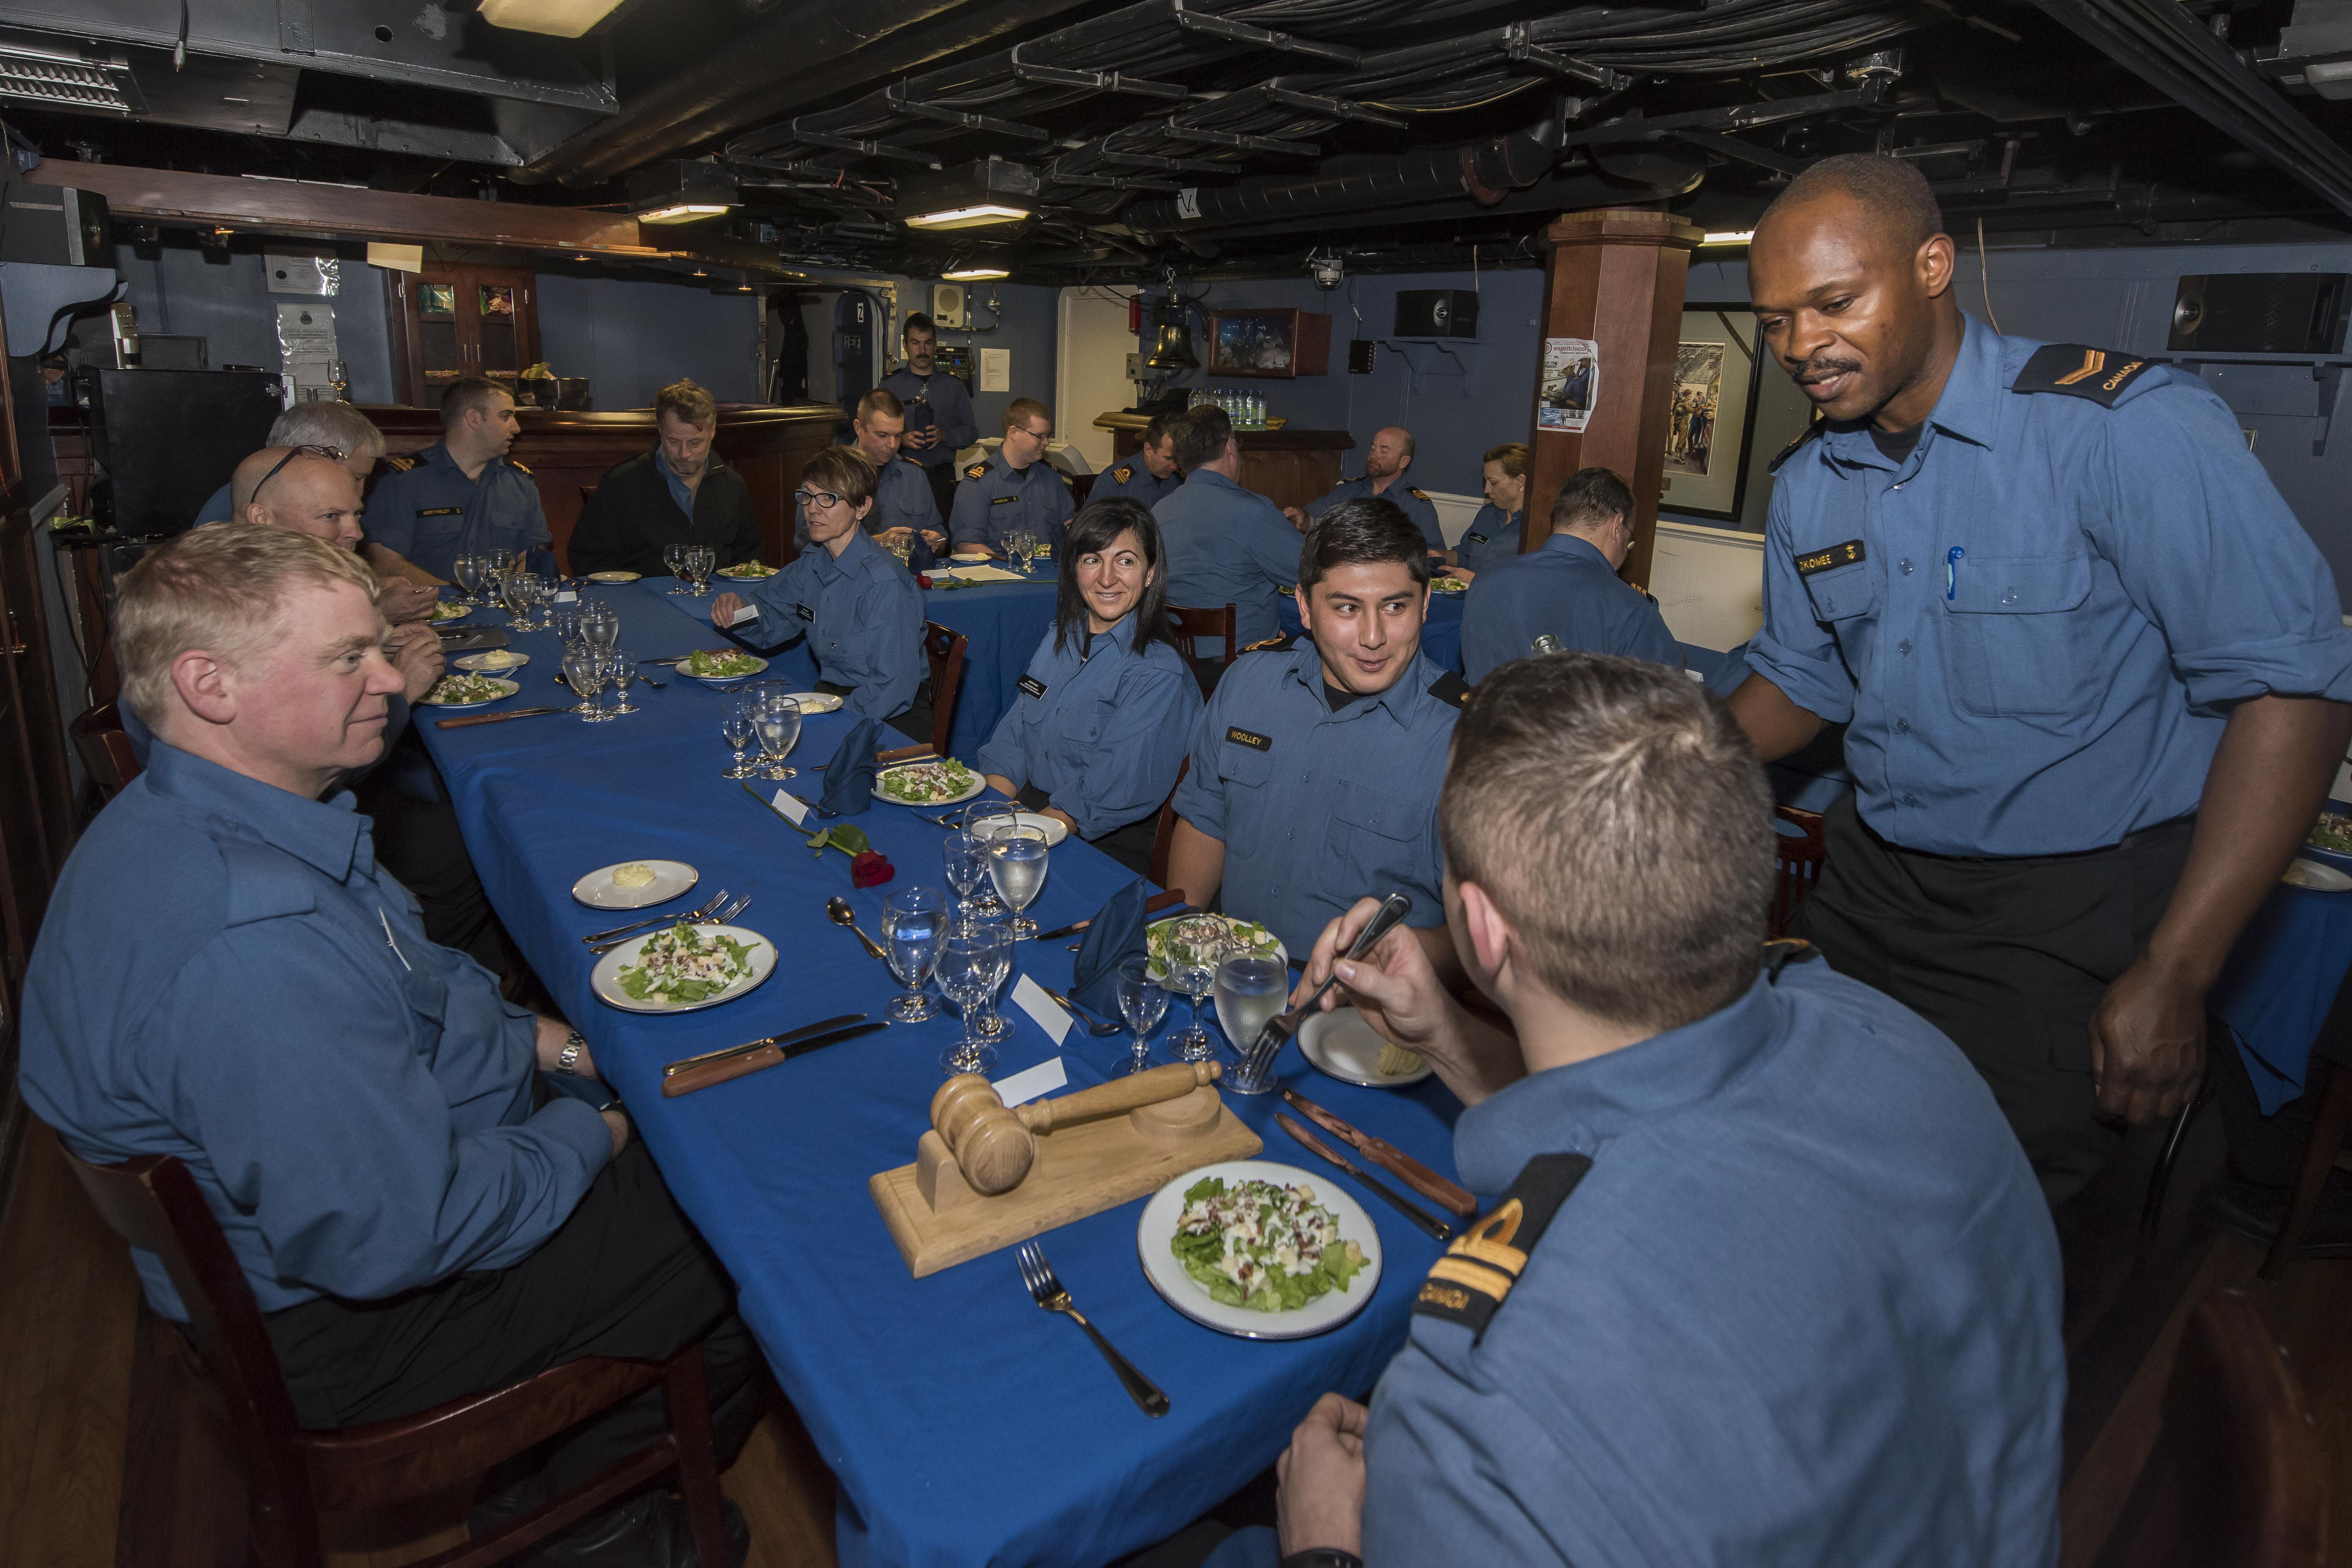 All of the guests and officers aboard the ship gathered on the evening of December 1 for a formal mess dinner in the wardroom.